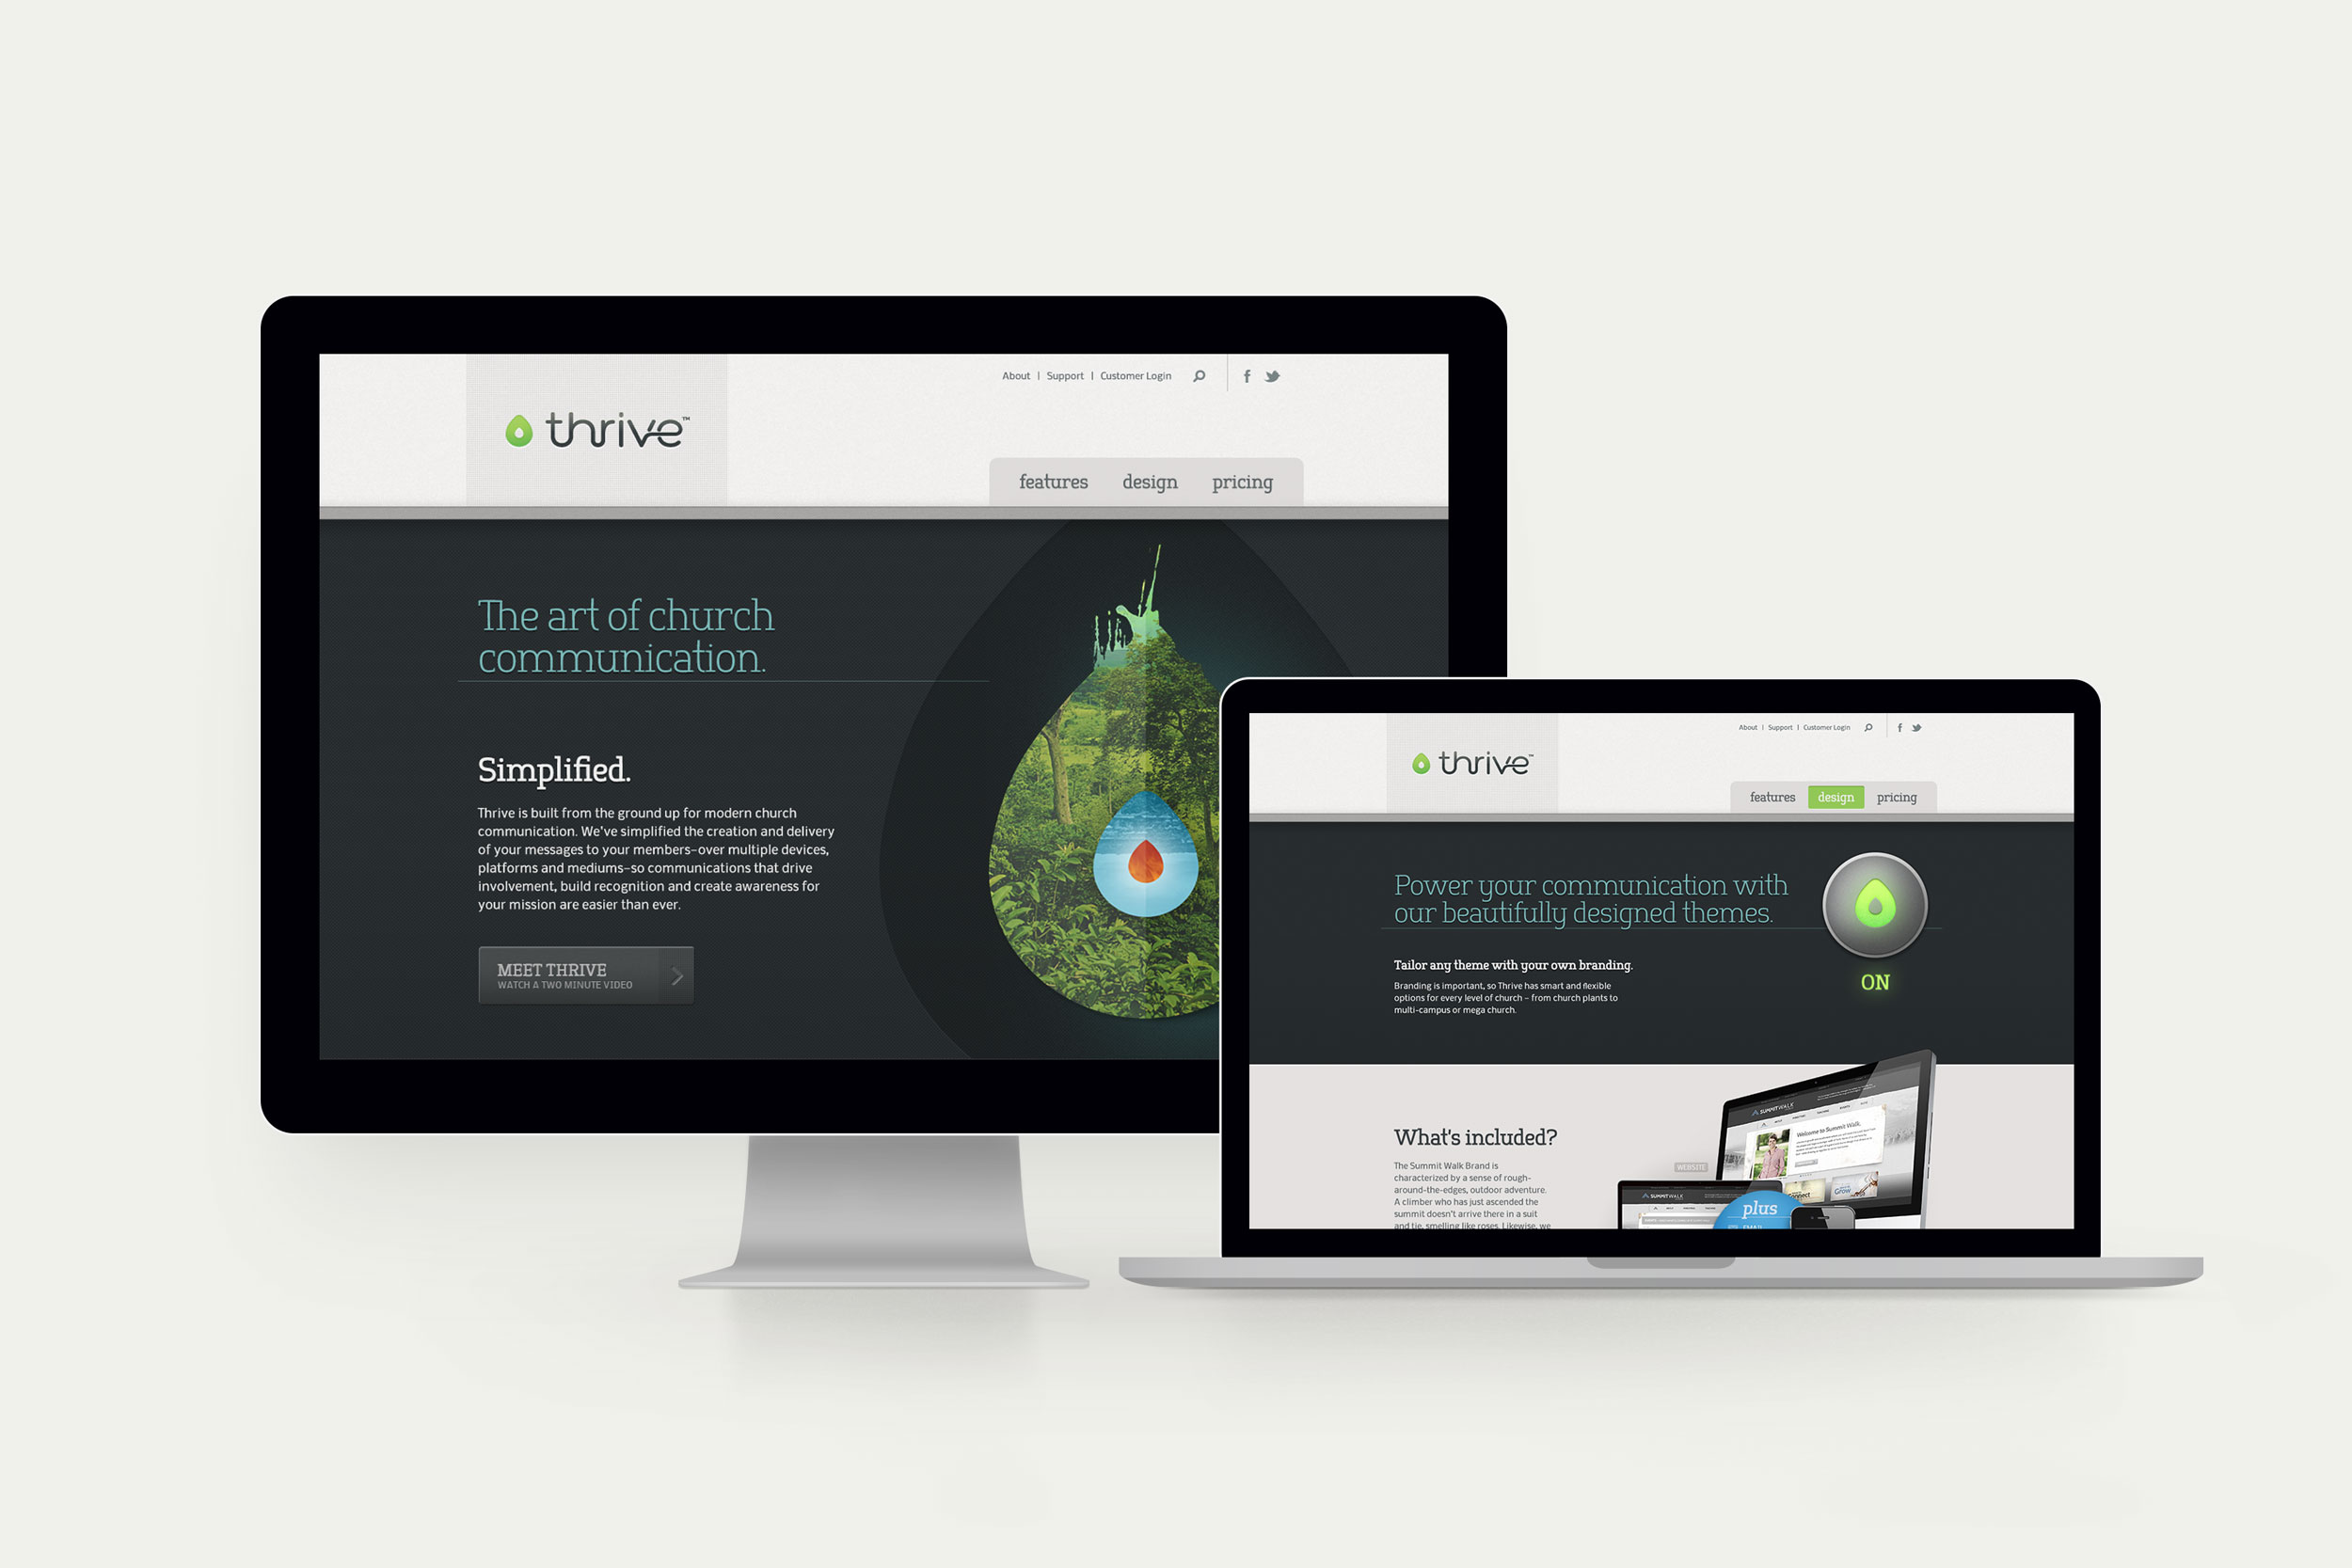 Thrive website design. Image copyright Jeff Miller, HellothisisJeff Design LLC